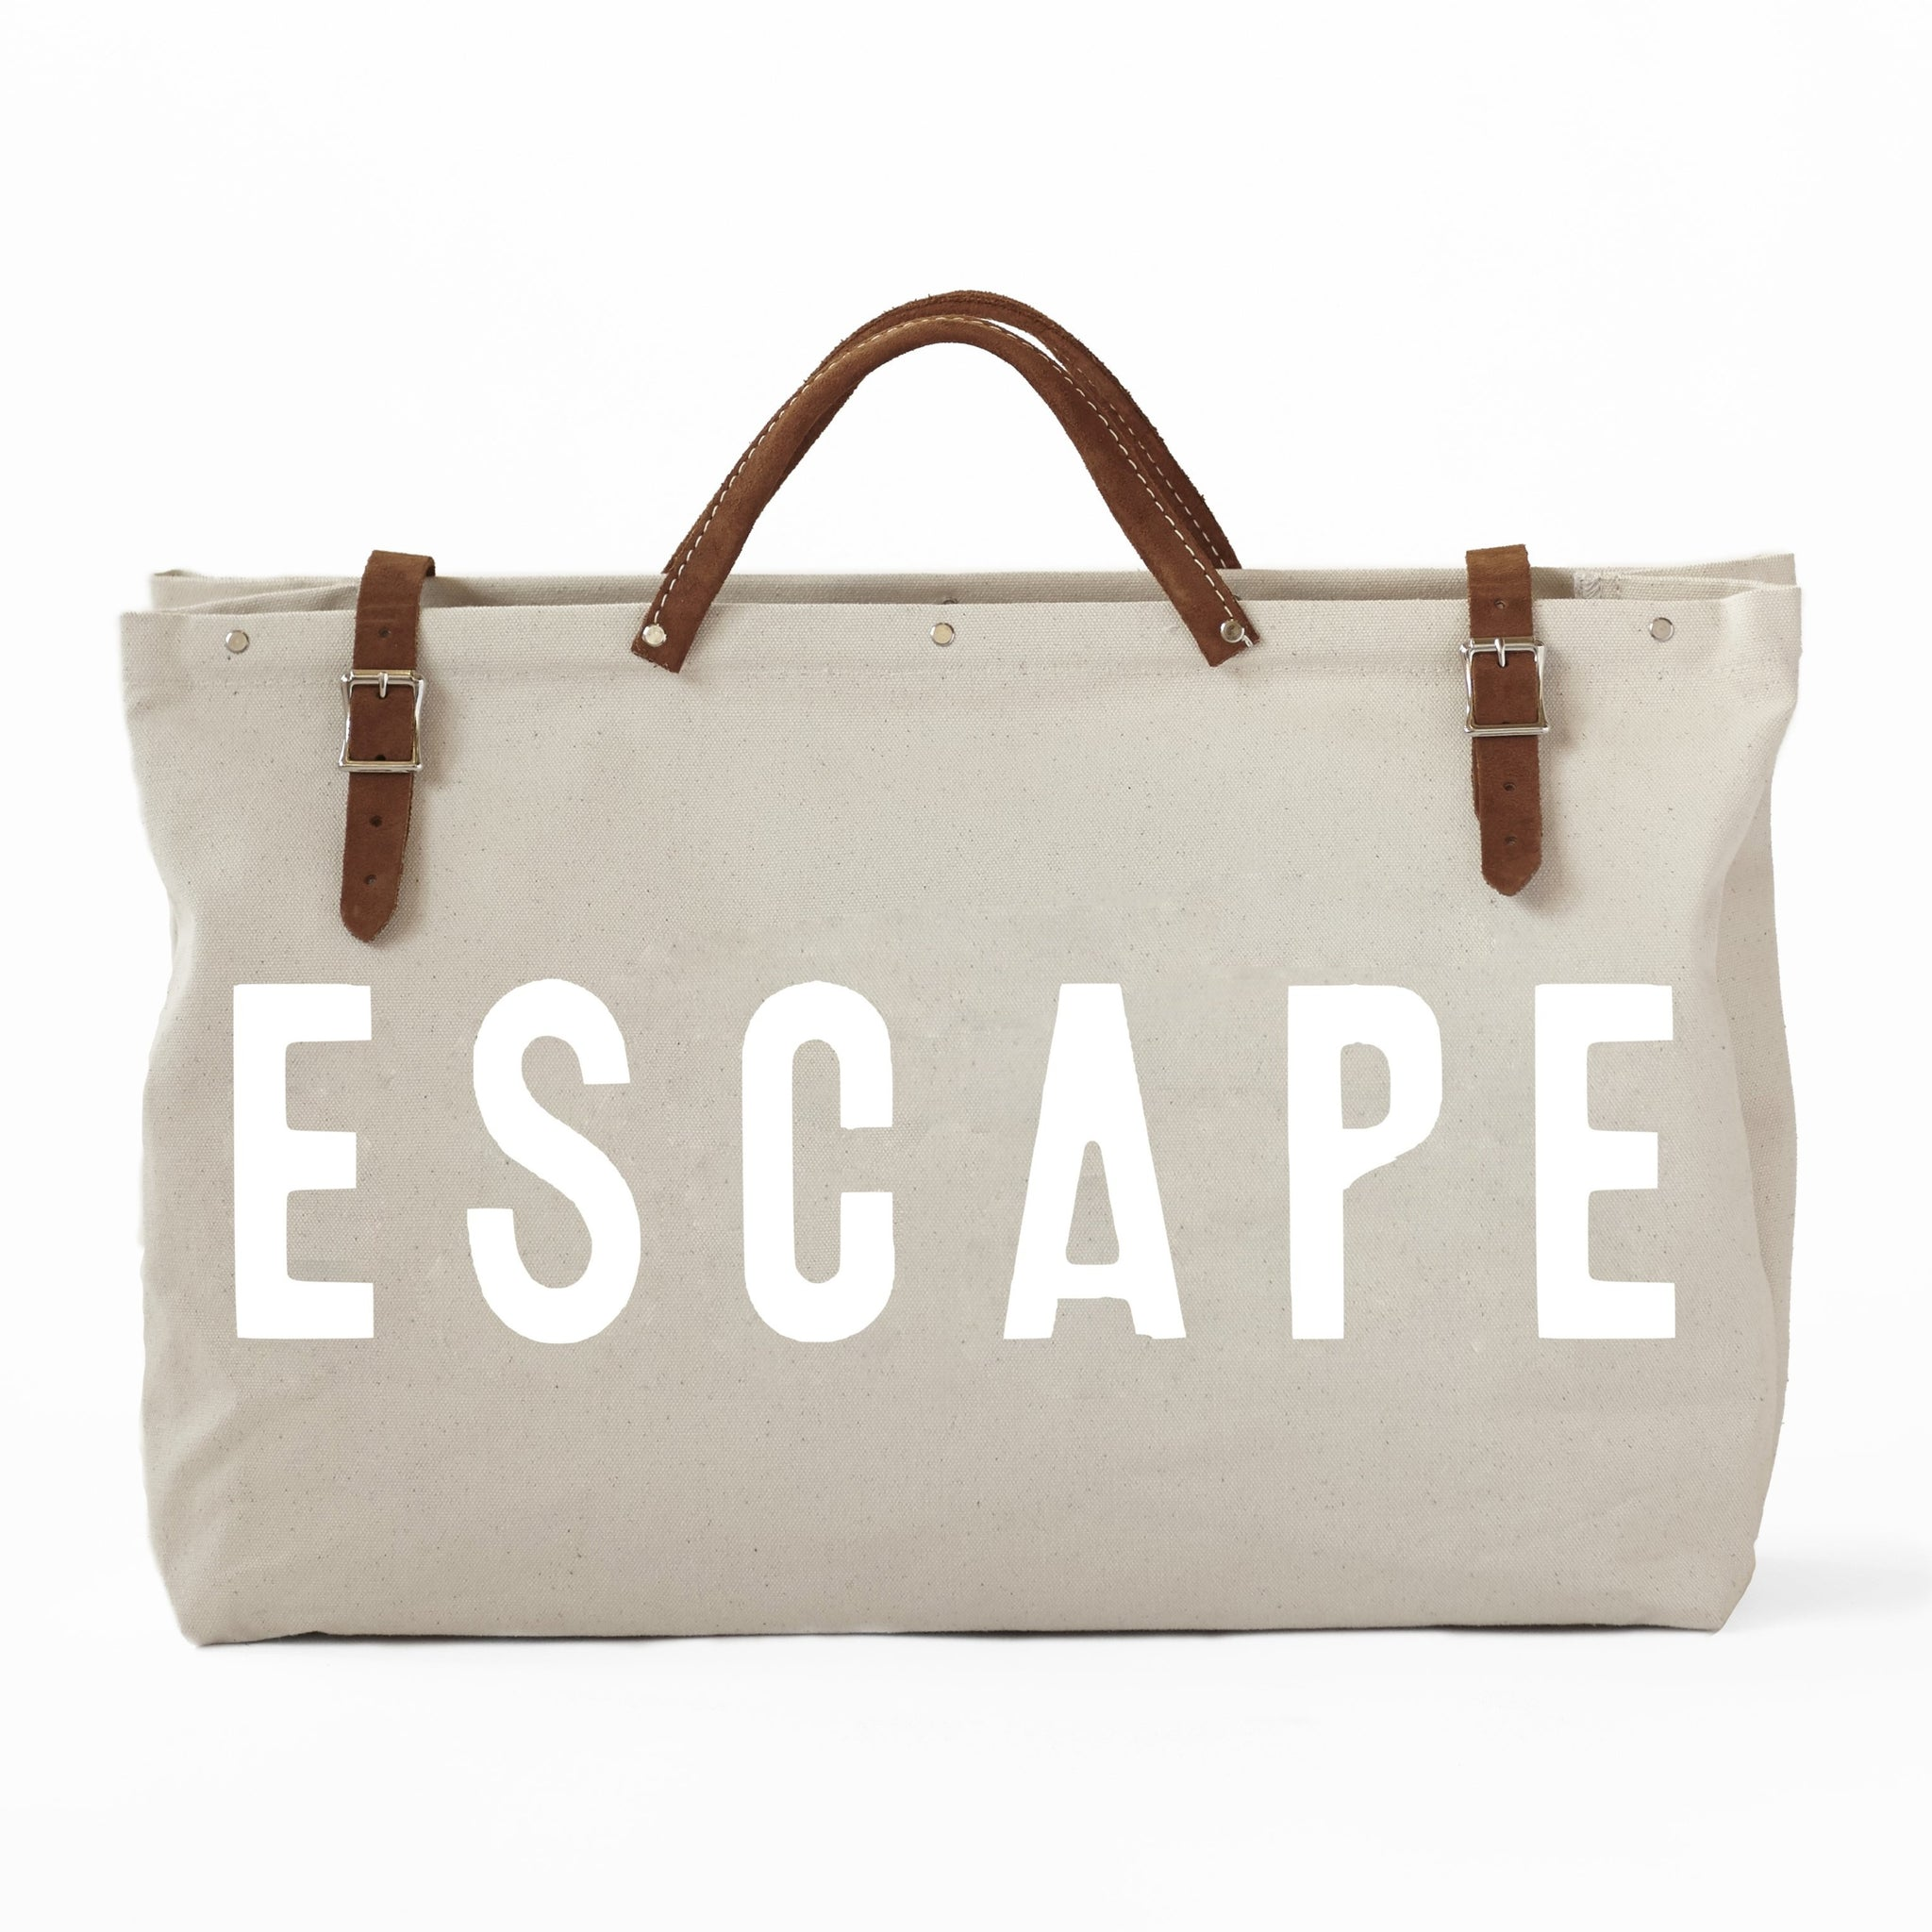 LIMITED EDITION - Forestbound ESCAPE Canvas Utility Bag, White on White